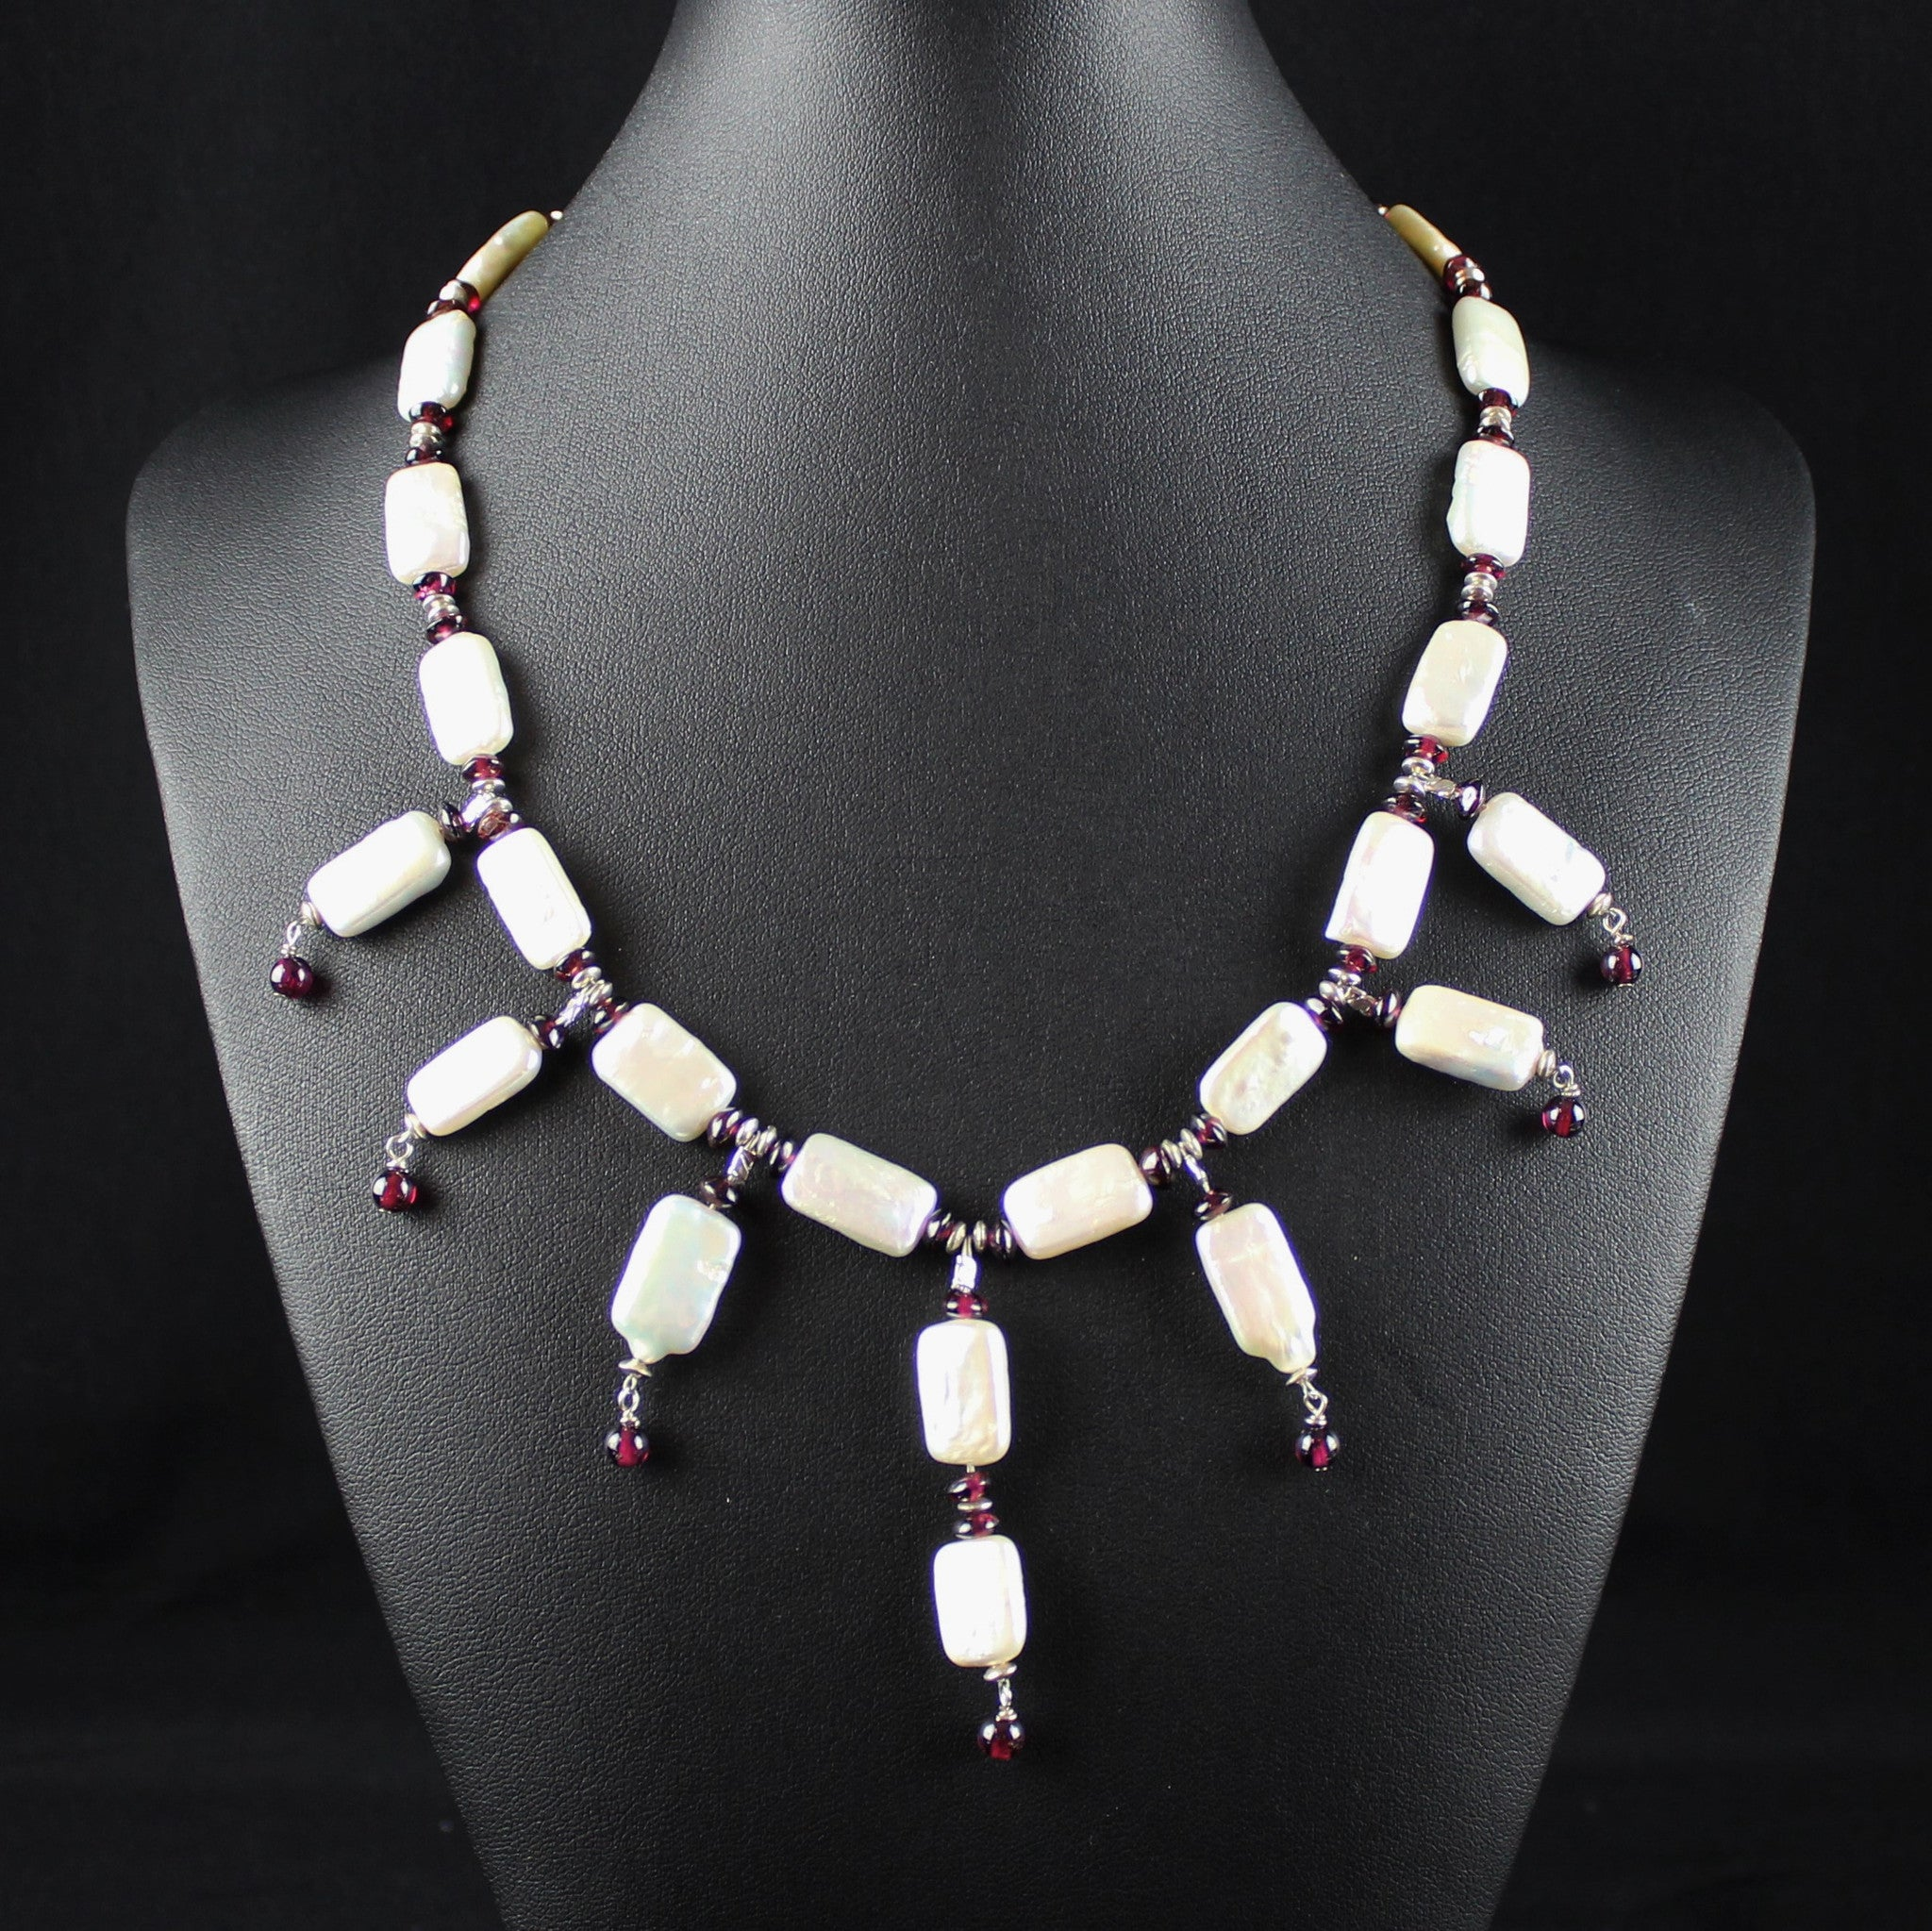 Susan M - Pearl & Garnet Necklace